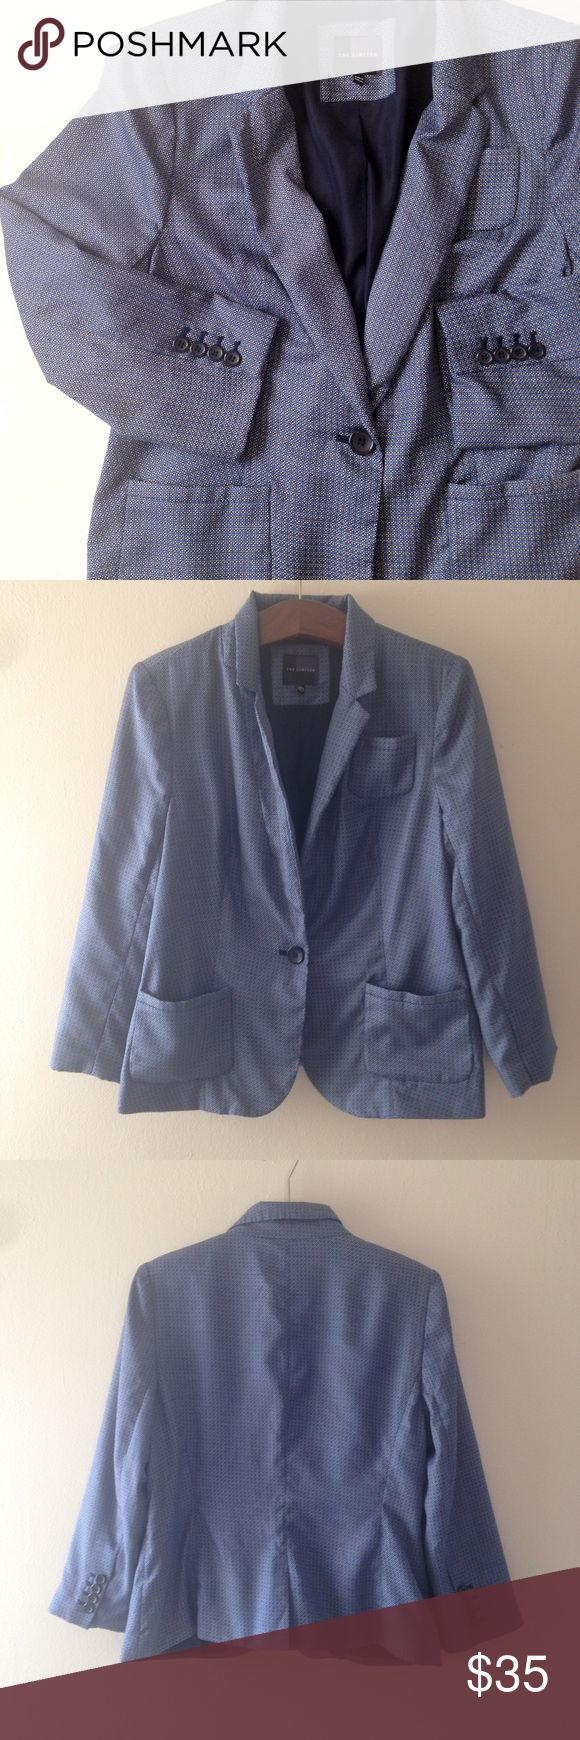 The Limited Geo Print Blazer Geo print blazer from The Limited. Size: L. Color: Blue, black, white. Shoulders are slightly padded. Three pockets. Light blazer, 100% polyester. The Limited Jackets & Coats Blazers